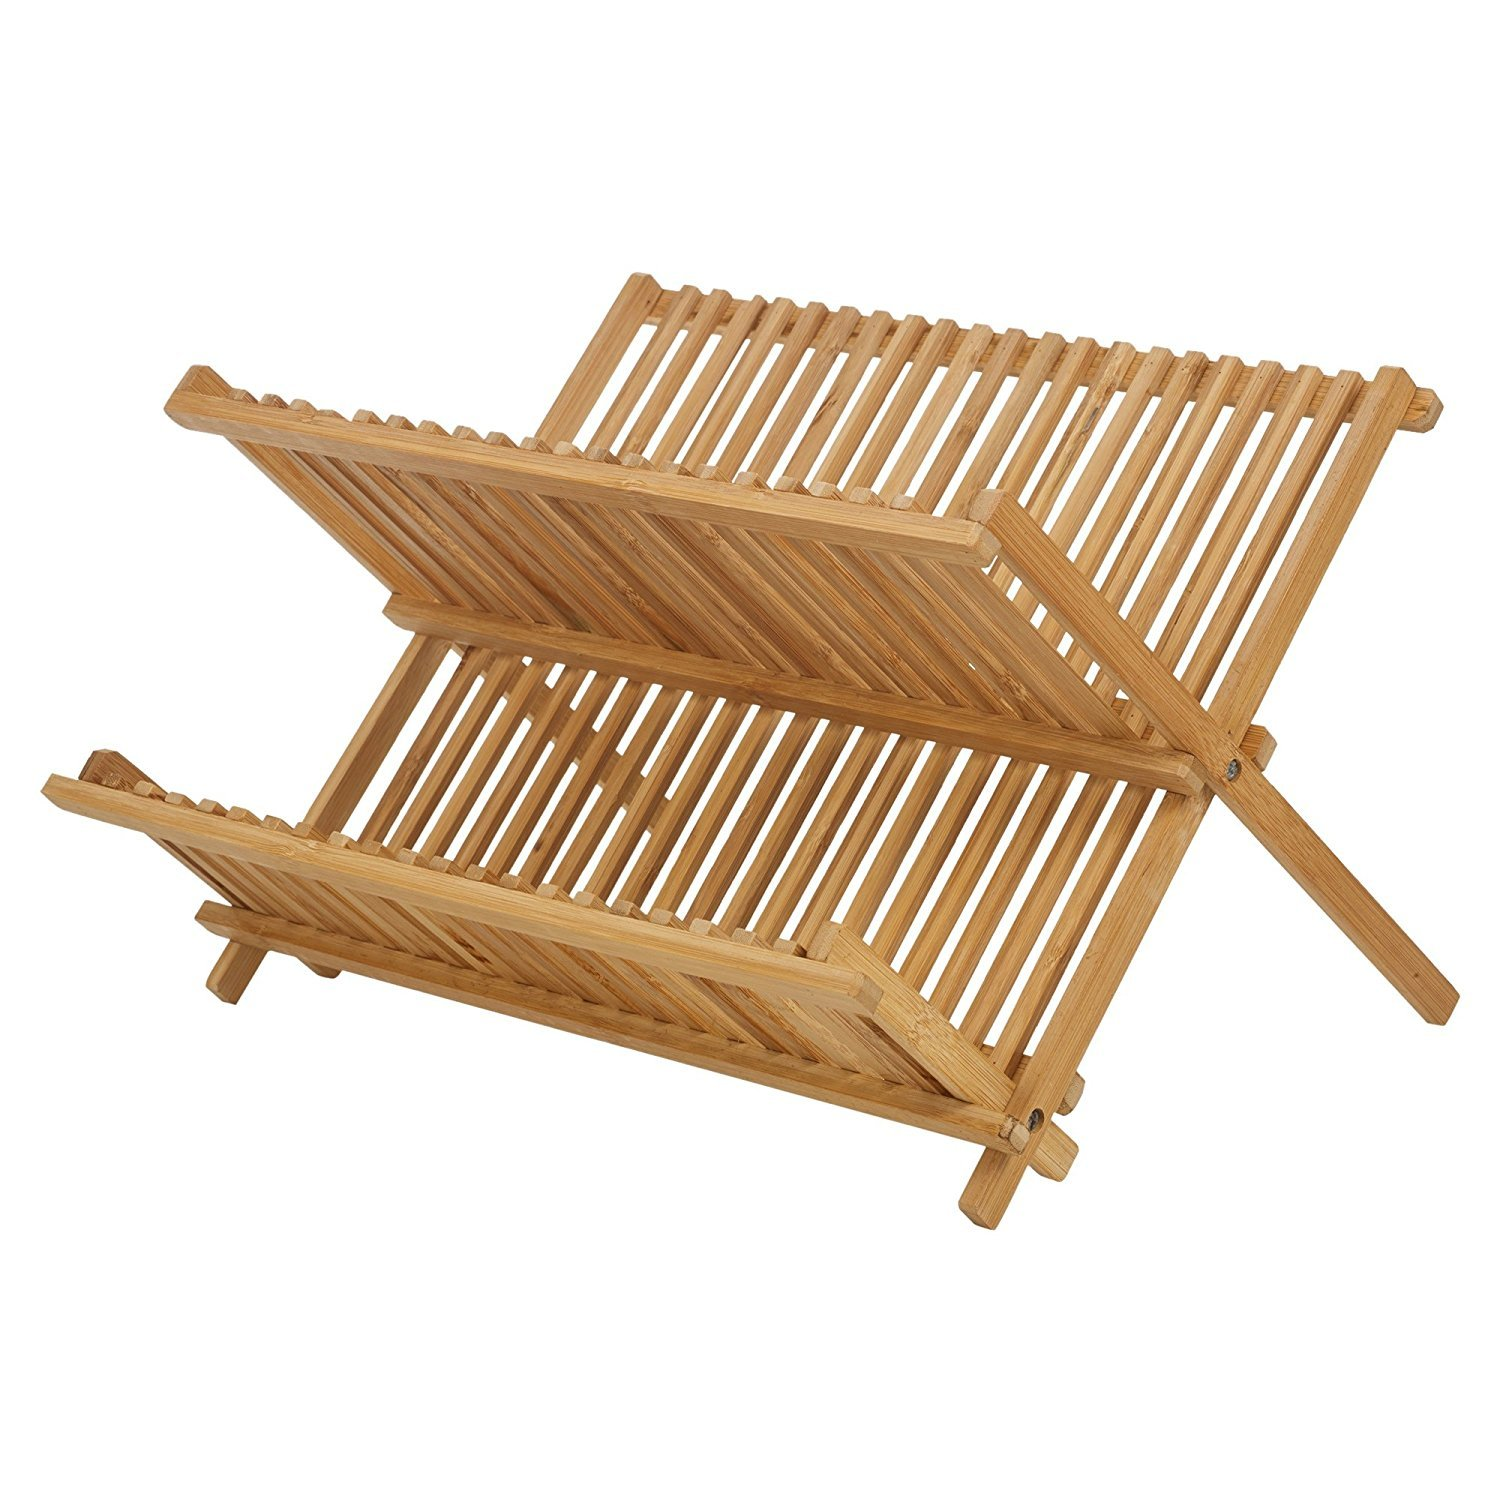 Bamboo Folding Beech Dish Plate Drainer Foldable Draining Board Wooden Rack New